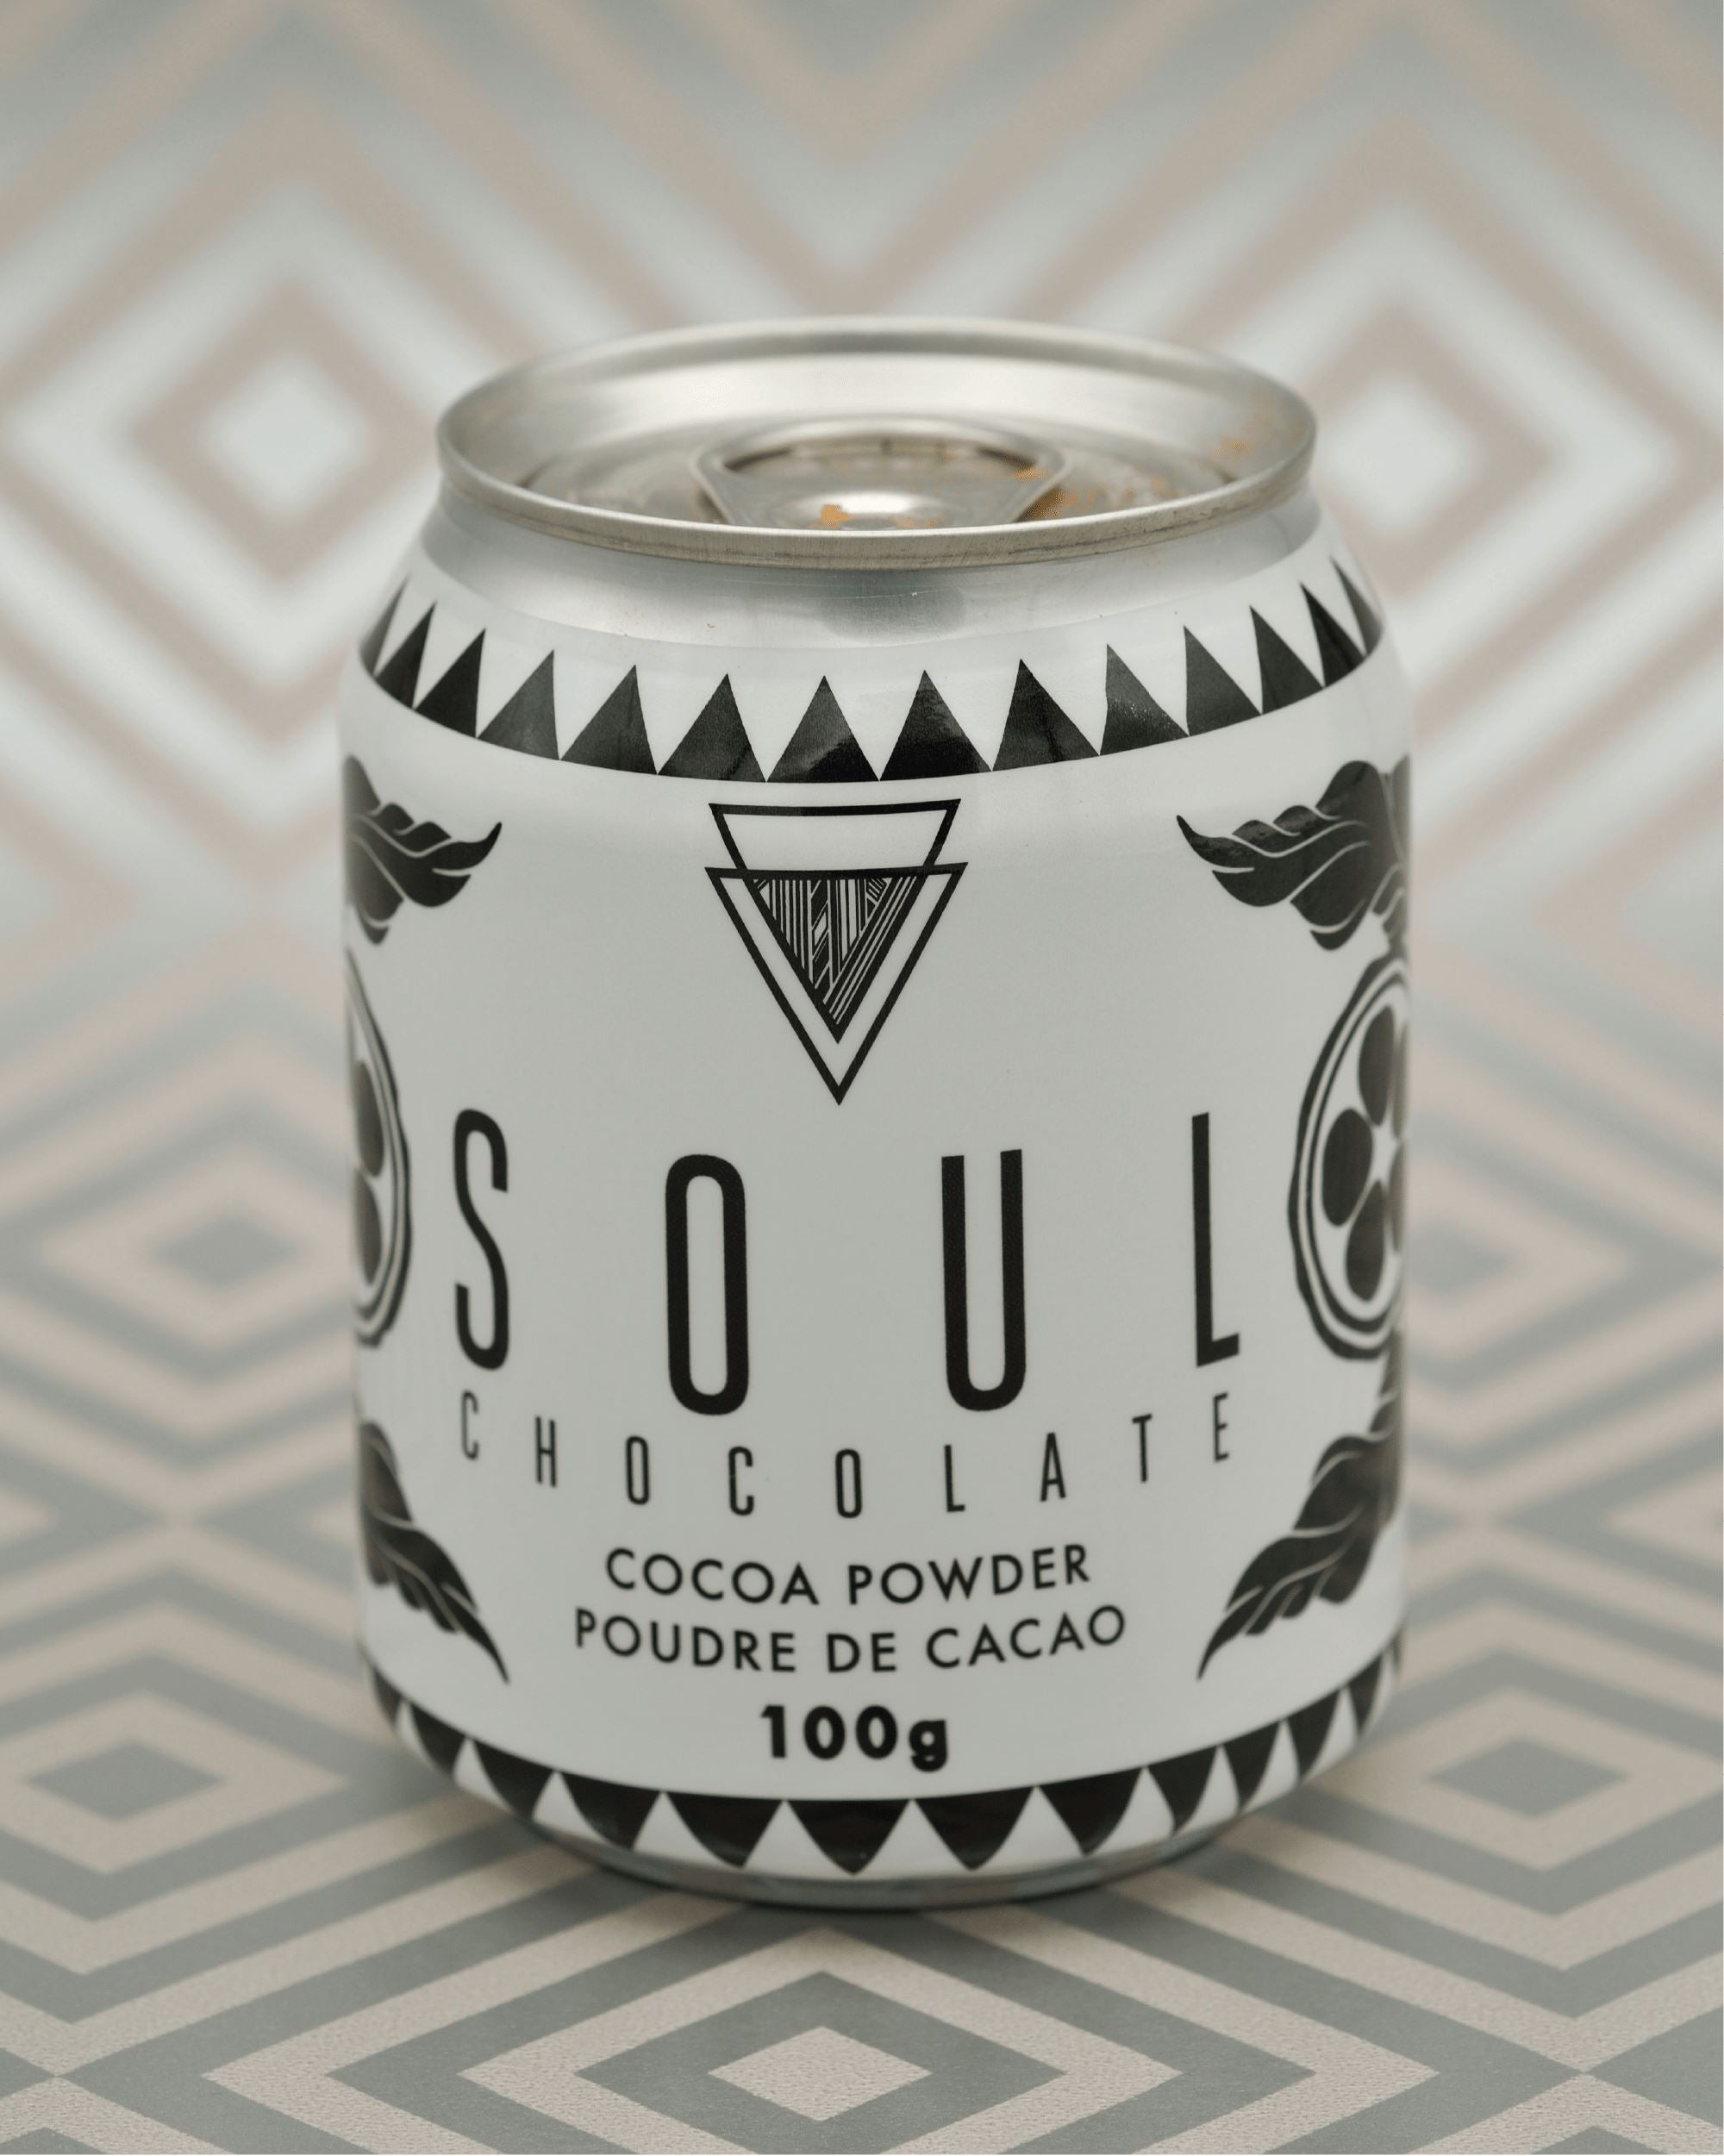 Cocoa Powder Soul Chocolate